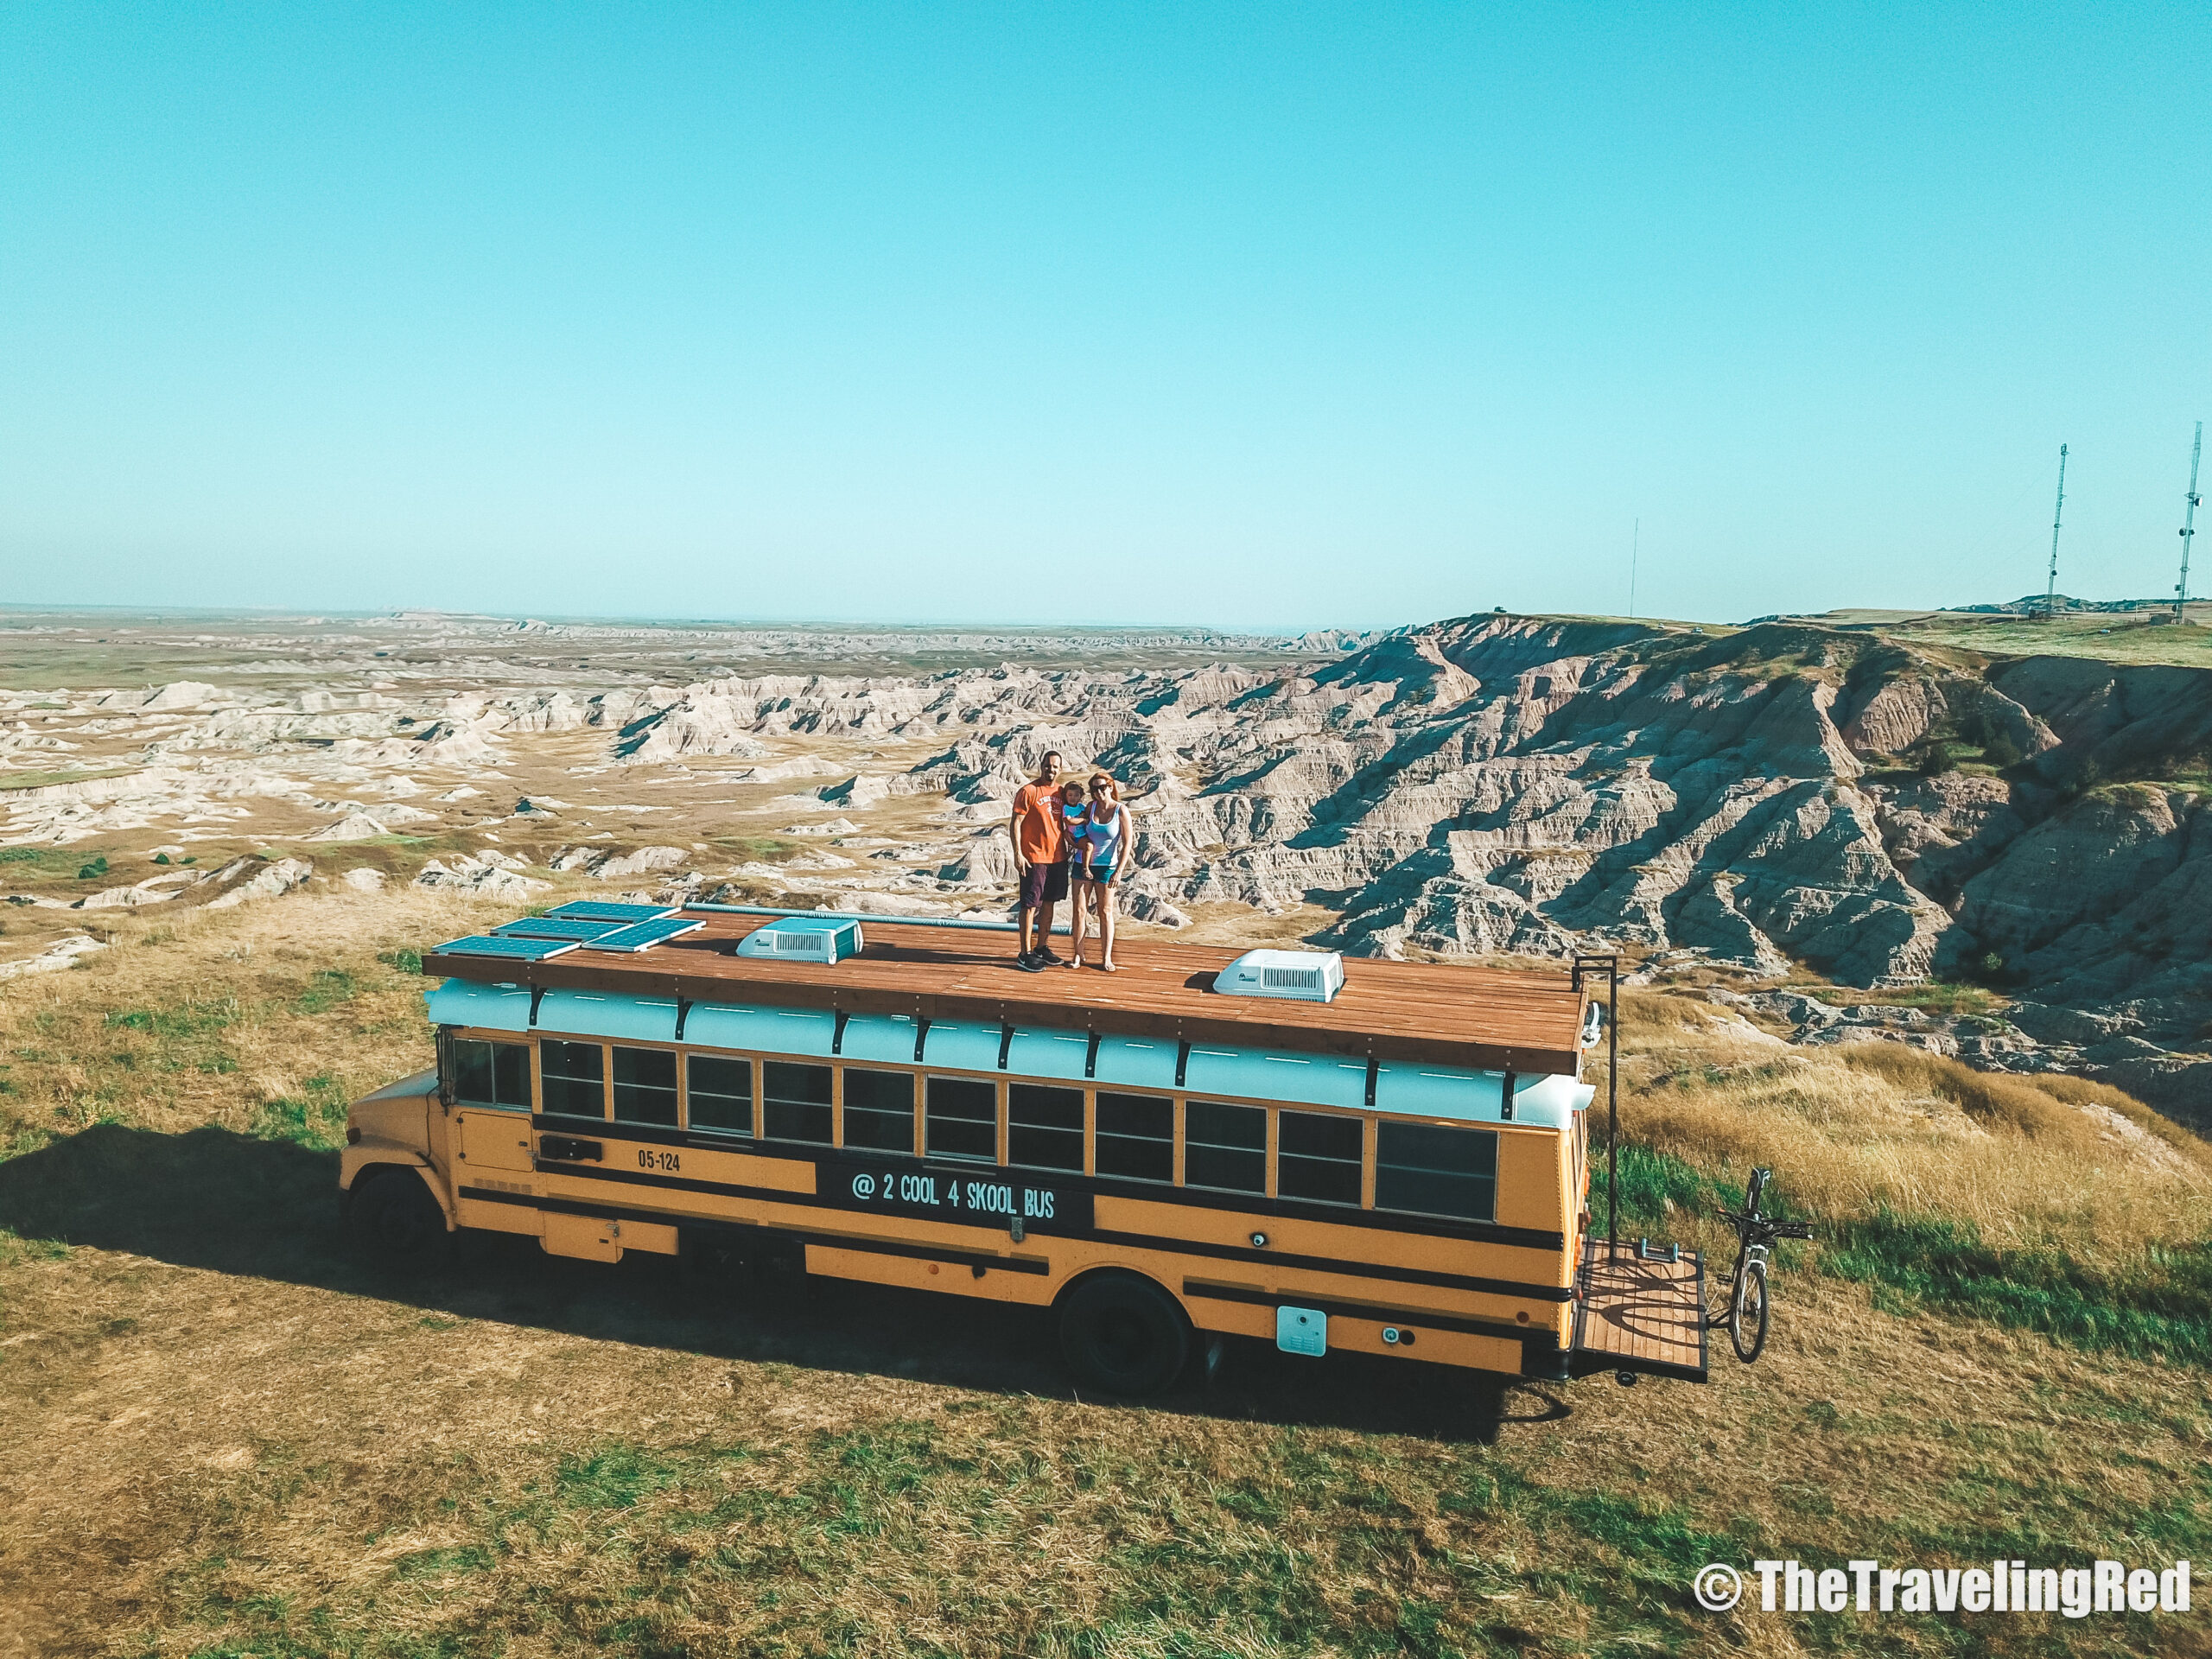 School Bus Conversion, 2 Cool 4 Skool Bus. On our roof deck in the Badlands. Full analysis of the cost of converting a yellow school bus into a vacation home on wheels. All of the details of our skoolie conversion. Our vacation home that took us on a road trip around the US to see some of the countries most beautiful places. #ConversionCost #SchoolBus #Skoolie #SchoolBusConversion